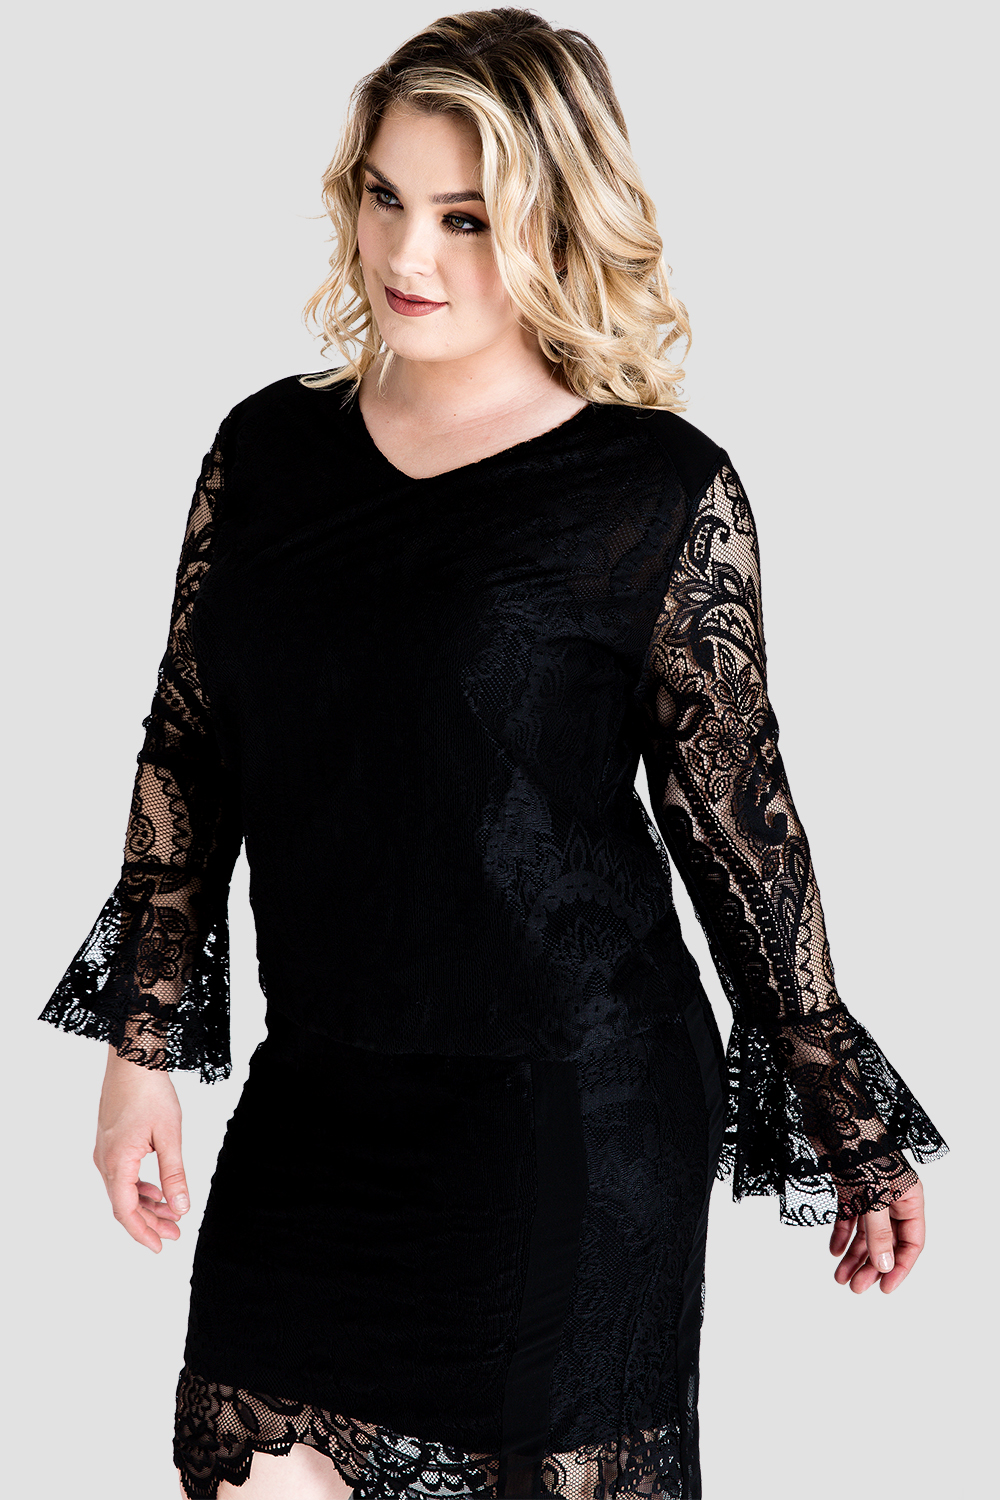 Plus Size Standards & Practices Women's Black Lace Flare Sleeve Shirt